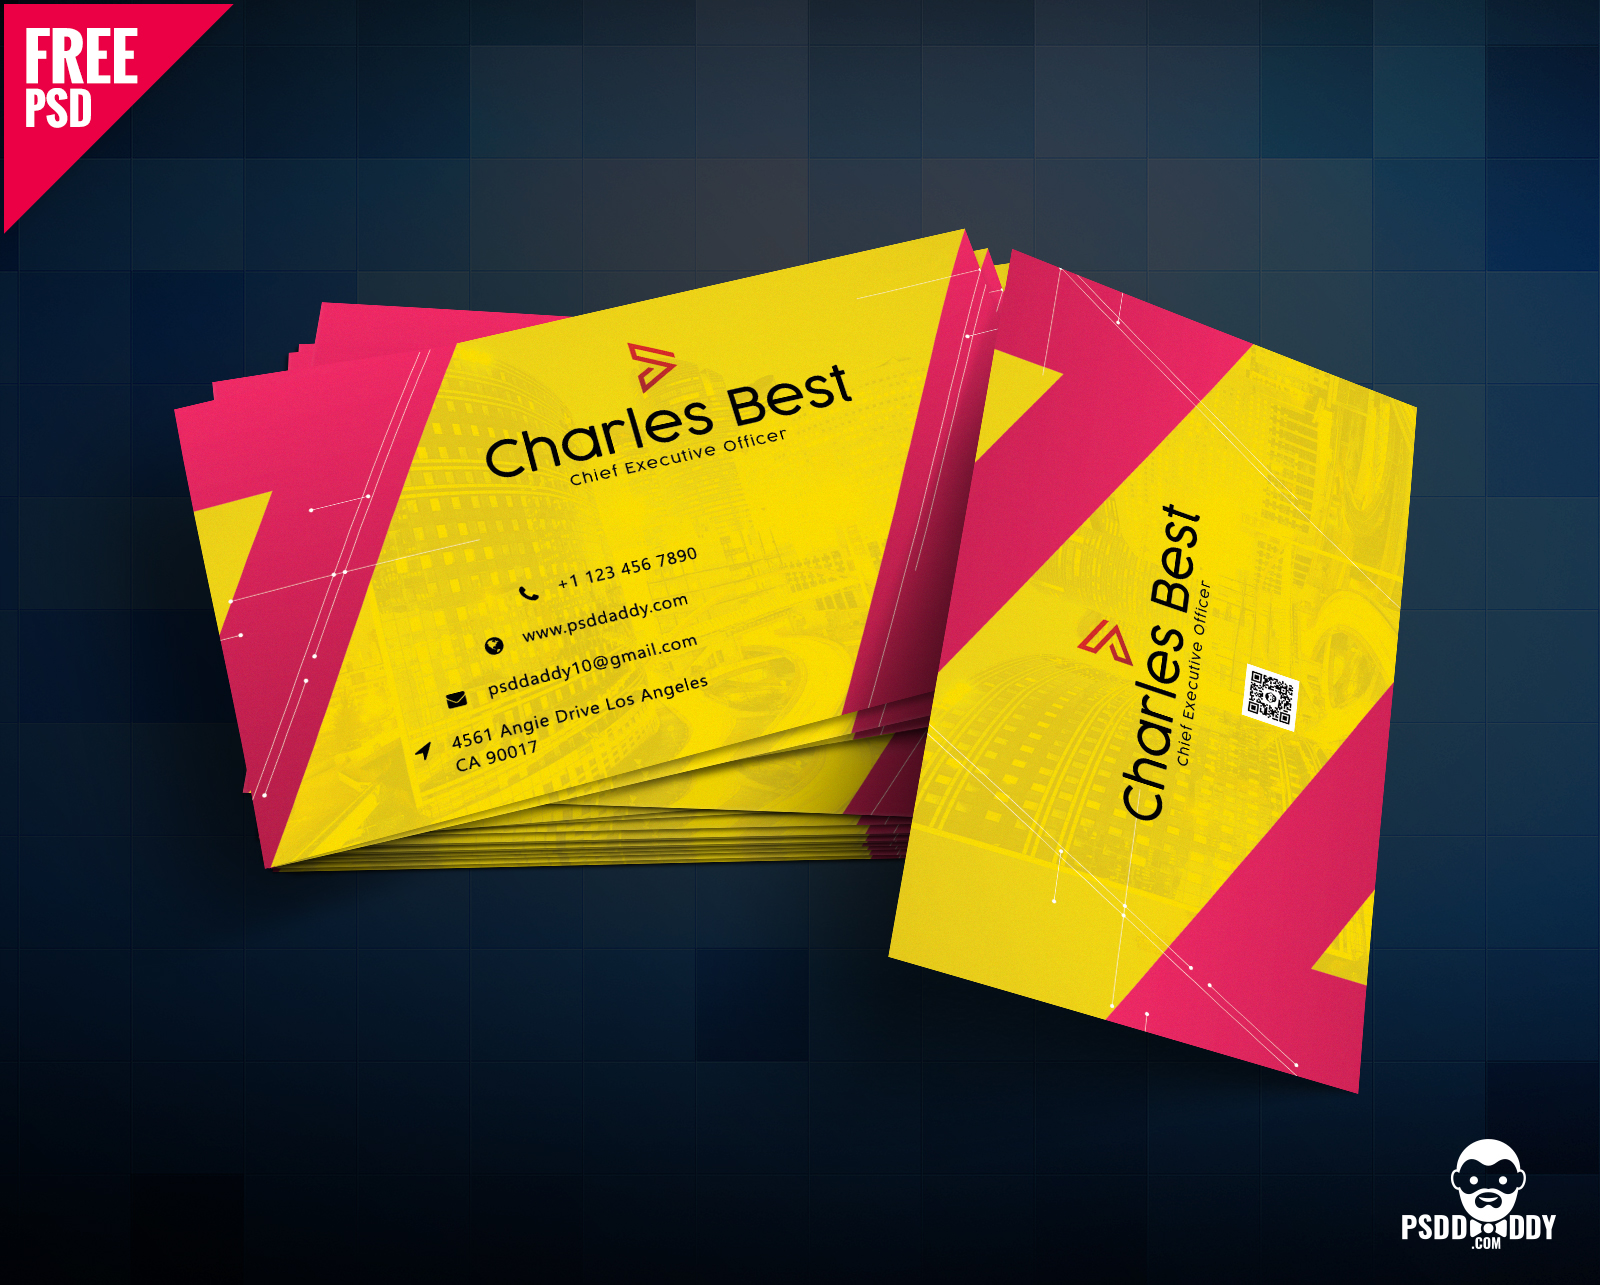 Download creative business card free psd psddaddy business card design business card design templates business card dimensions business card holder cheaphphosting Gallery